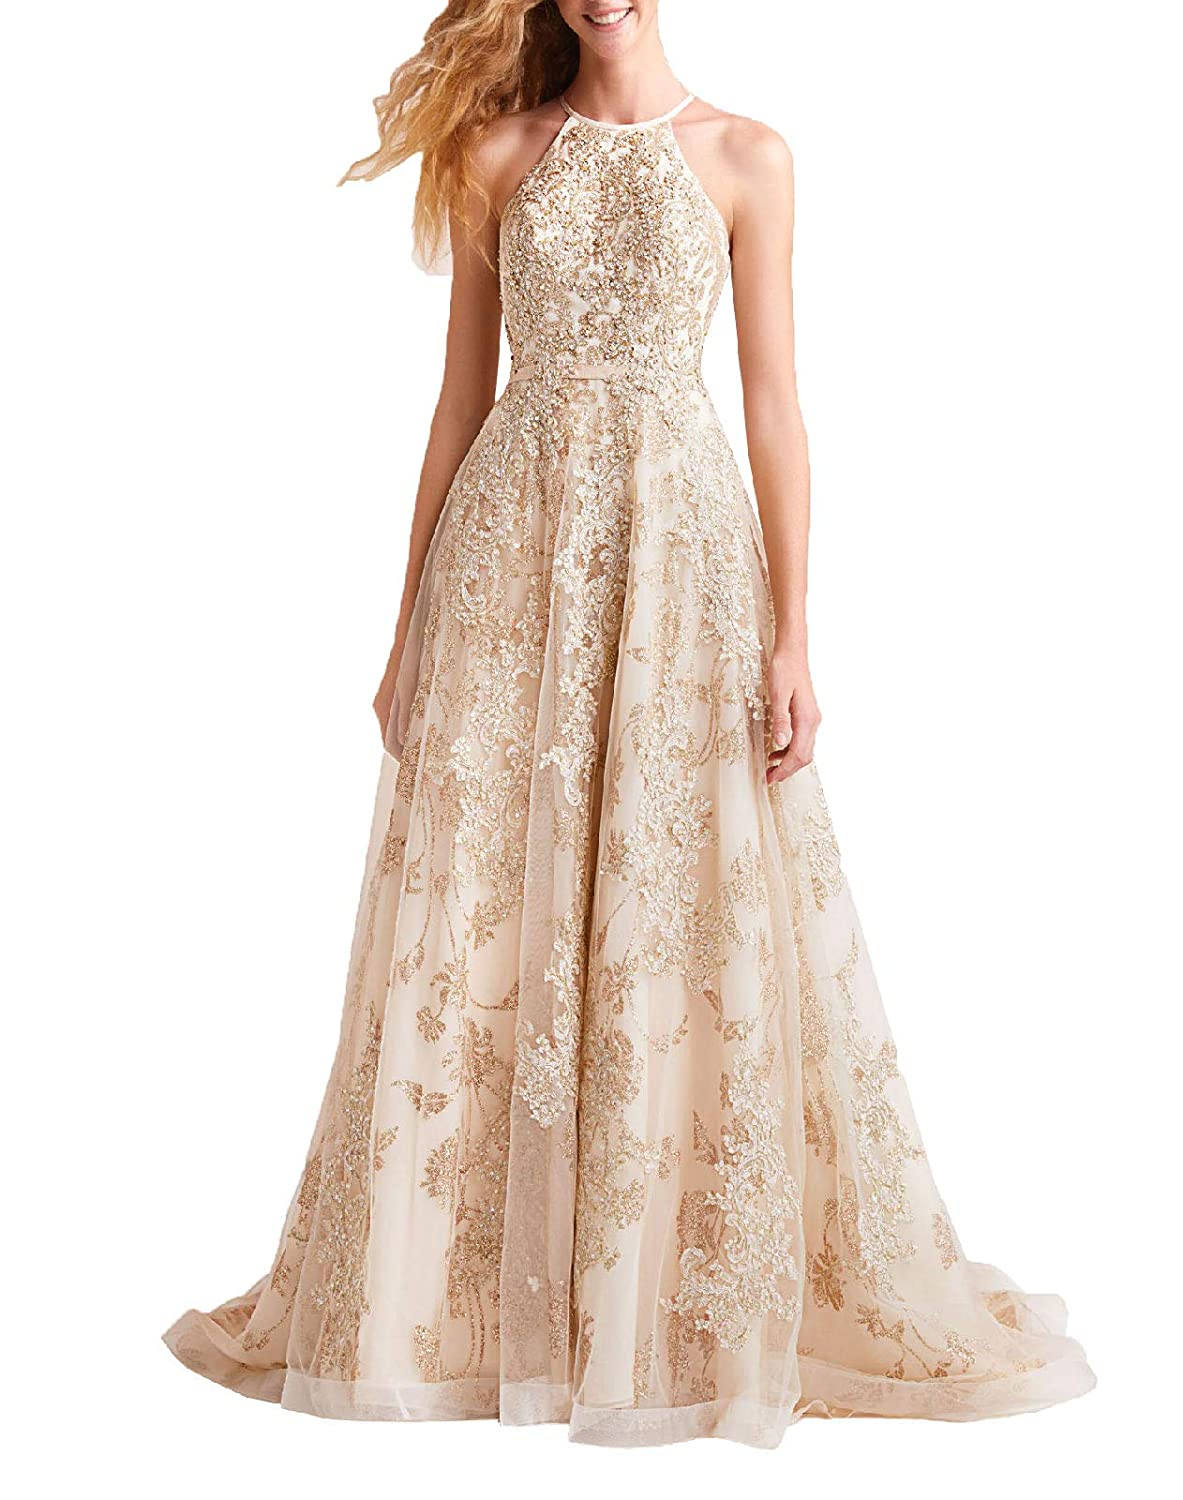 Champagne Wanshaqin Women's Aline Floral Beaded Prom Formal Dress Evening Cocktail Dress Bridesmaid Gown for Wedding Party